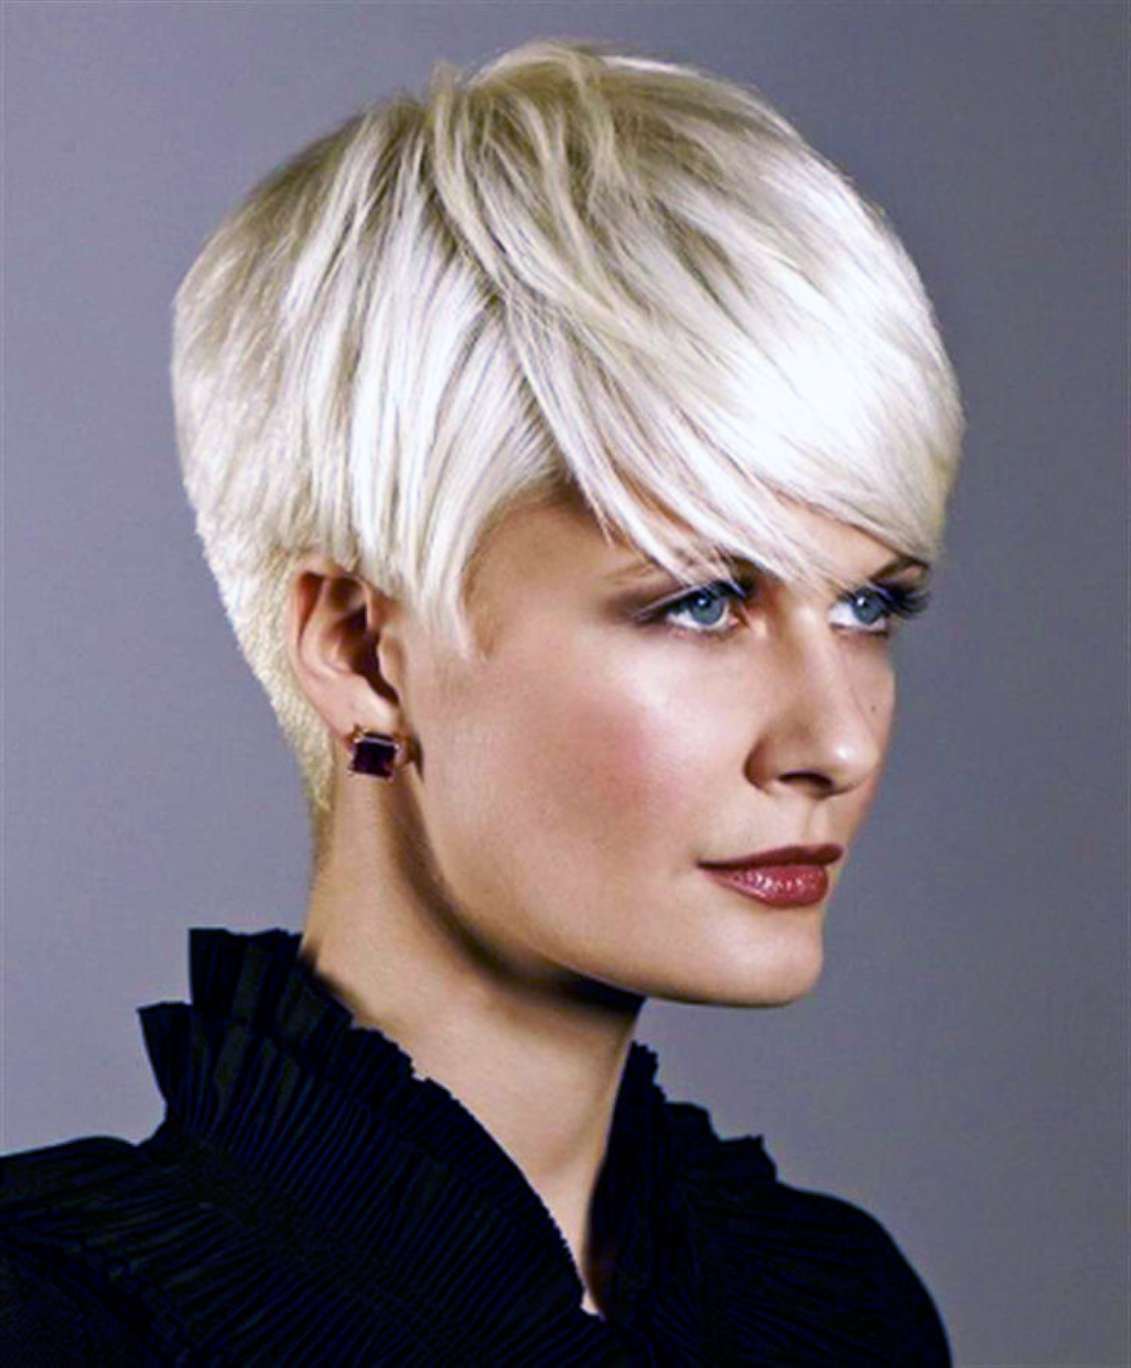 Short hairstyles trendy short hairstyles for women - Trendy Short Hairstyles With Cool Haircuts Trendy Short Haircuts 2014 Hairstyle Thin Hair Styles Are